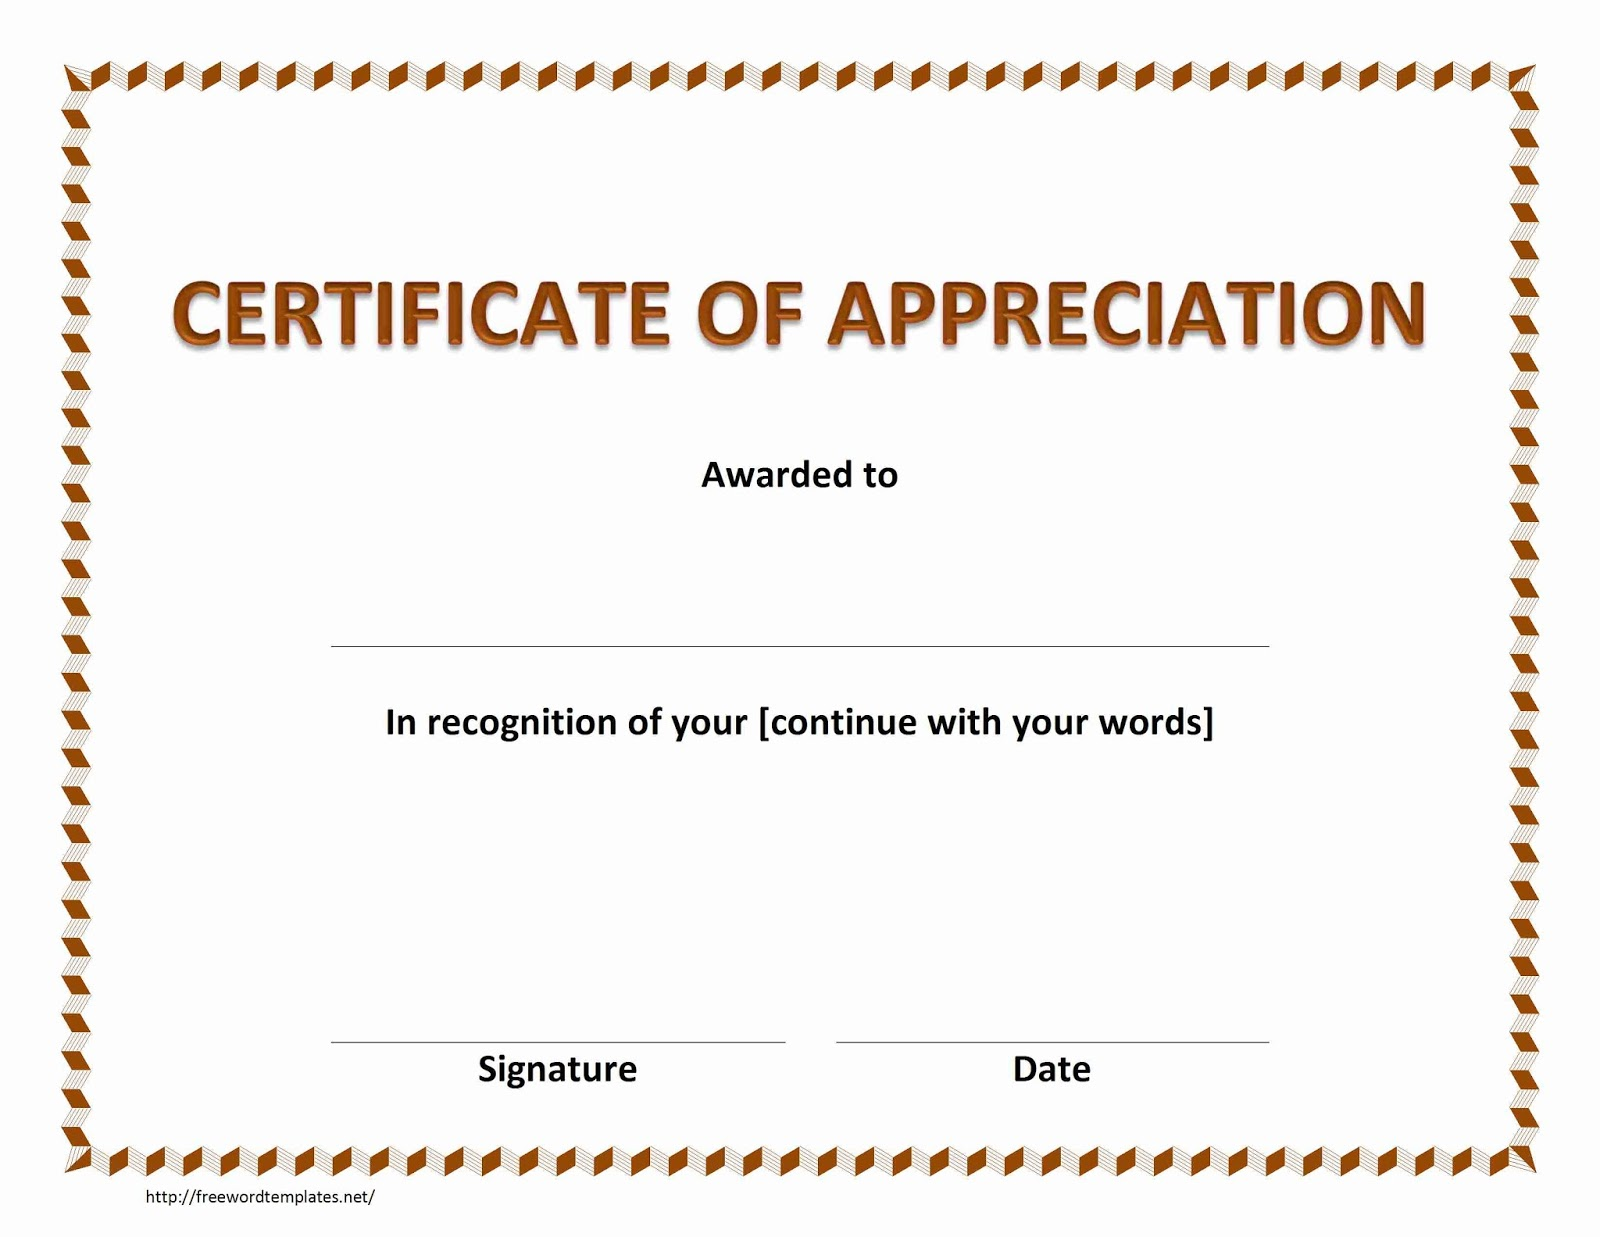 Certificate Of Appreciation Template For Word  Military Certificate Of Appreciation Template